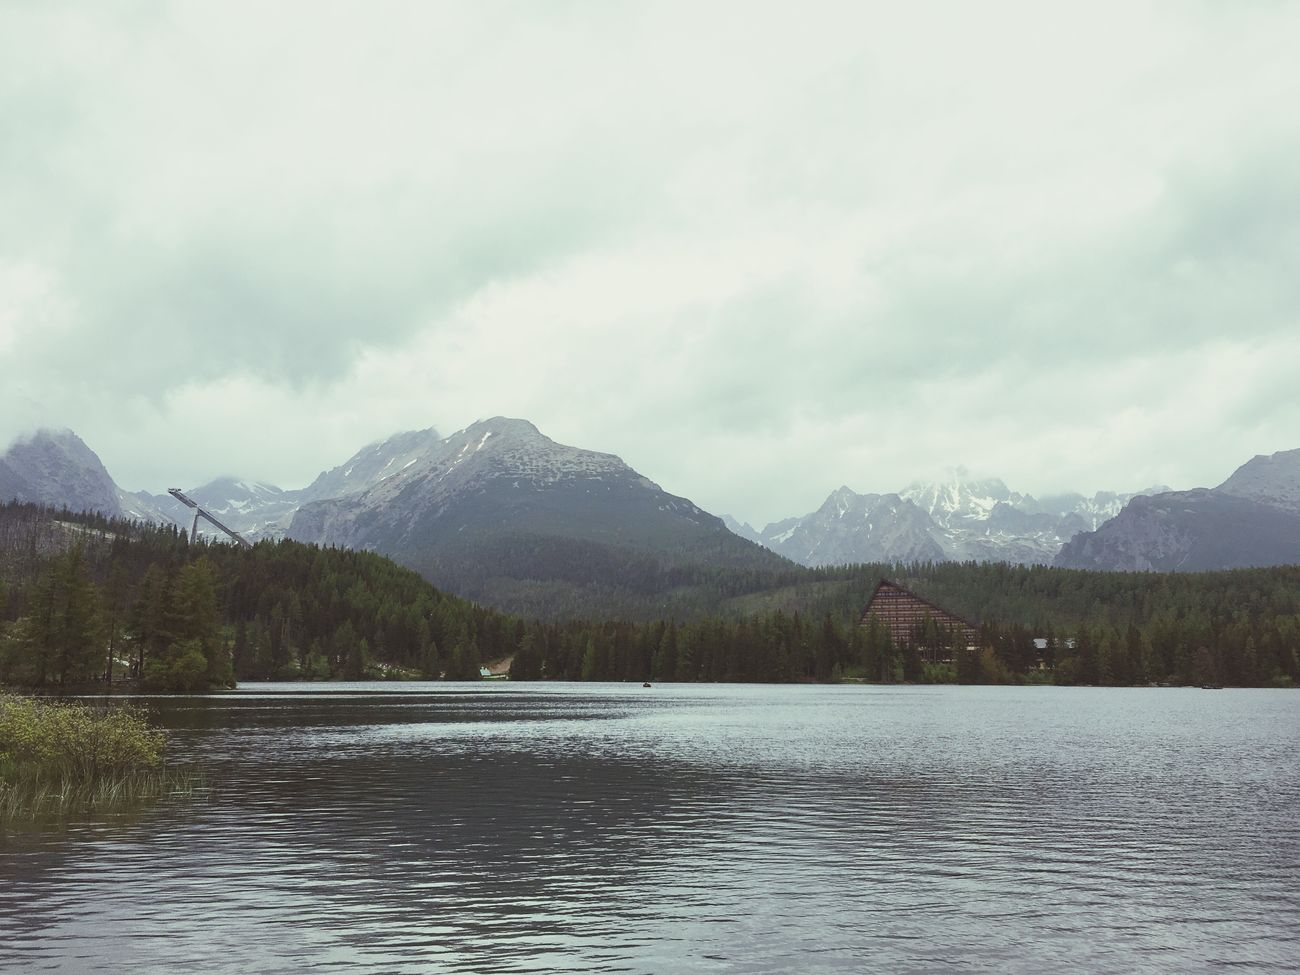 Strbske Pleso Tatry Hotel First Eyeem Photo Mobilephoto Nature Nature_collection Mauntain Tree Sky And Clouds Skyviewers Clouds